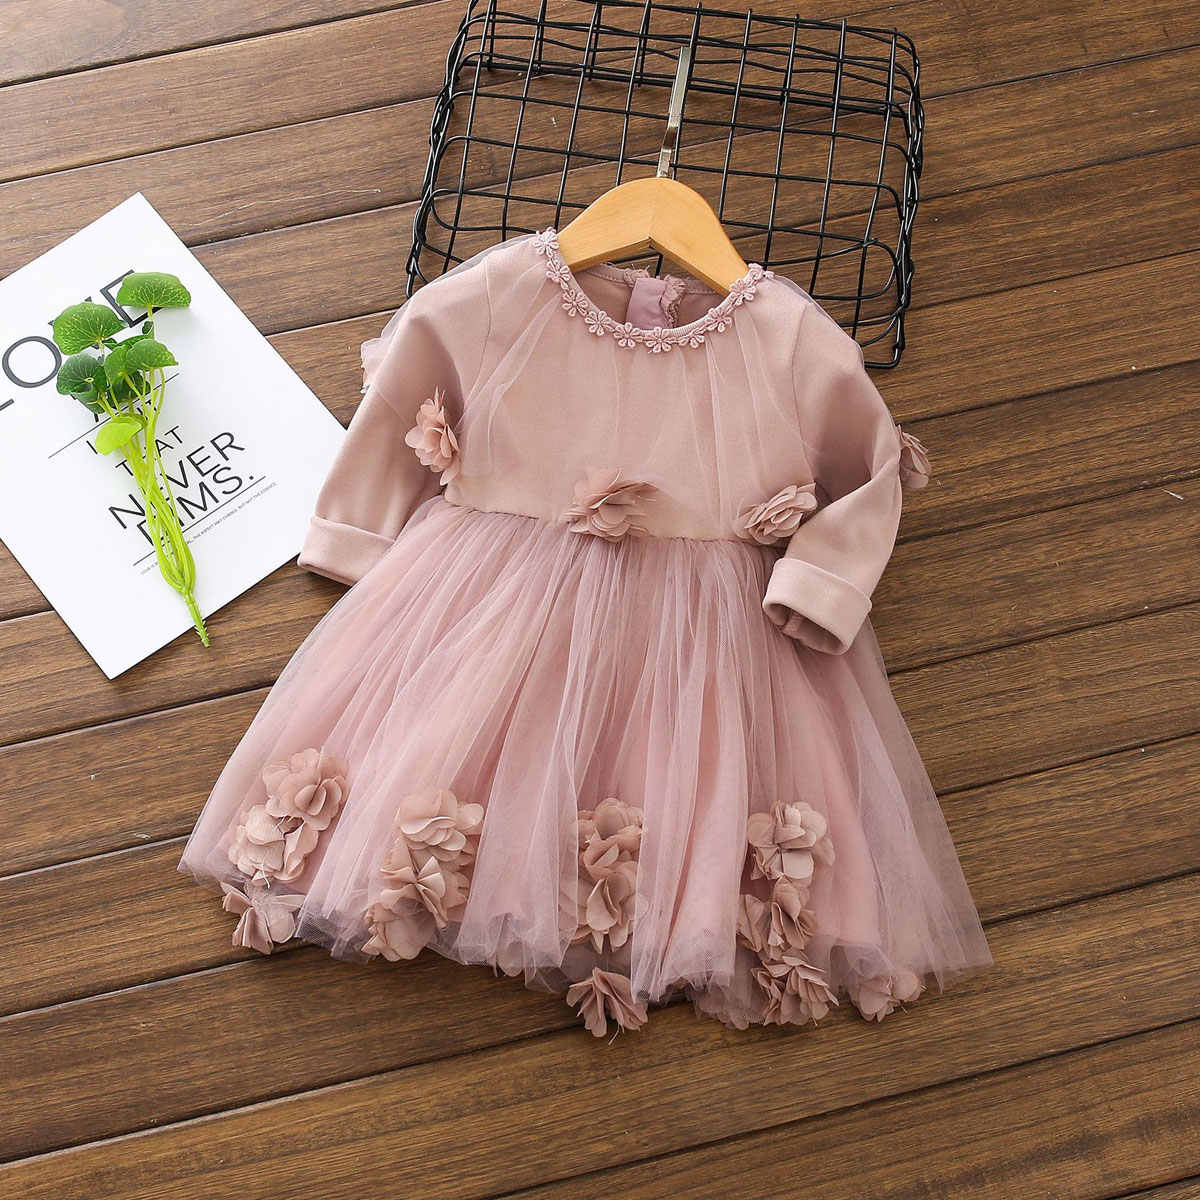 0-4Years Newborn Baby Toddler Kid Girls Dress Long Sleeve Lace Flower Tutu Party Birthday Dresses For Girl Baby Costumes Autumn